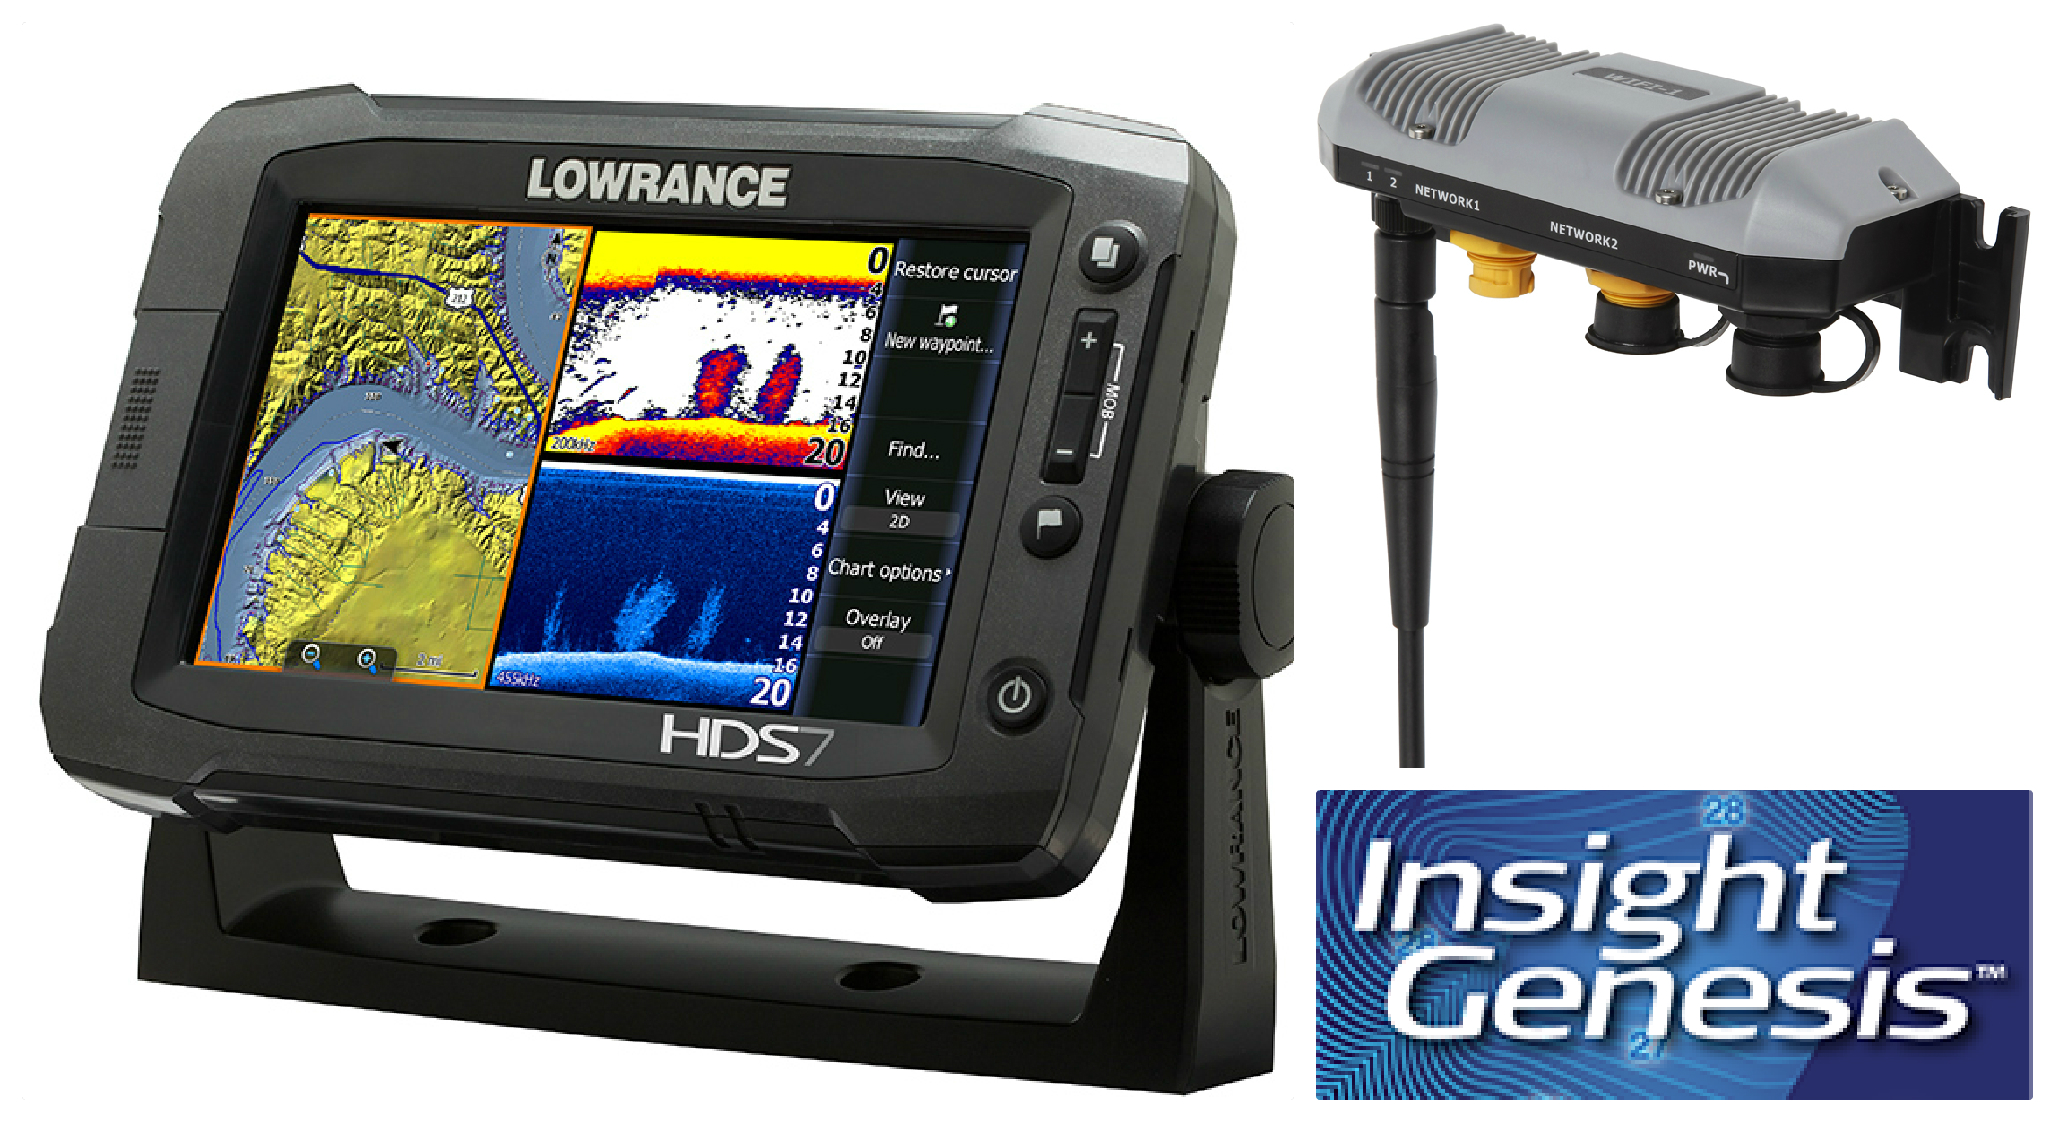 Want to win a Lowrance HDS Gen 2 Touch sonar/GPS unit? Go fishing on